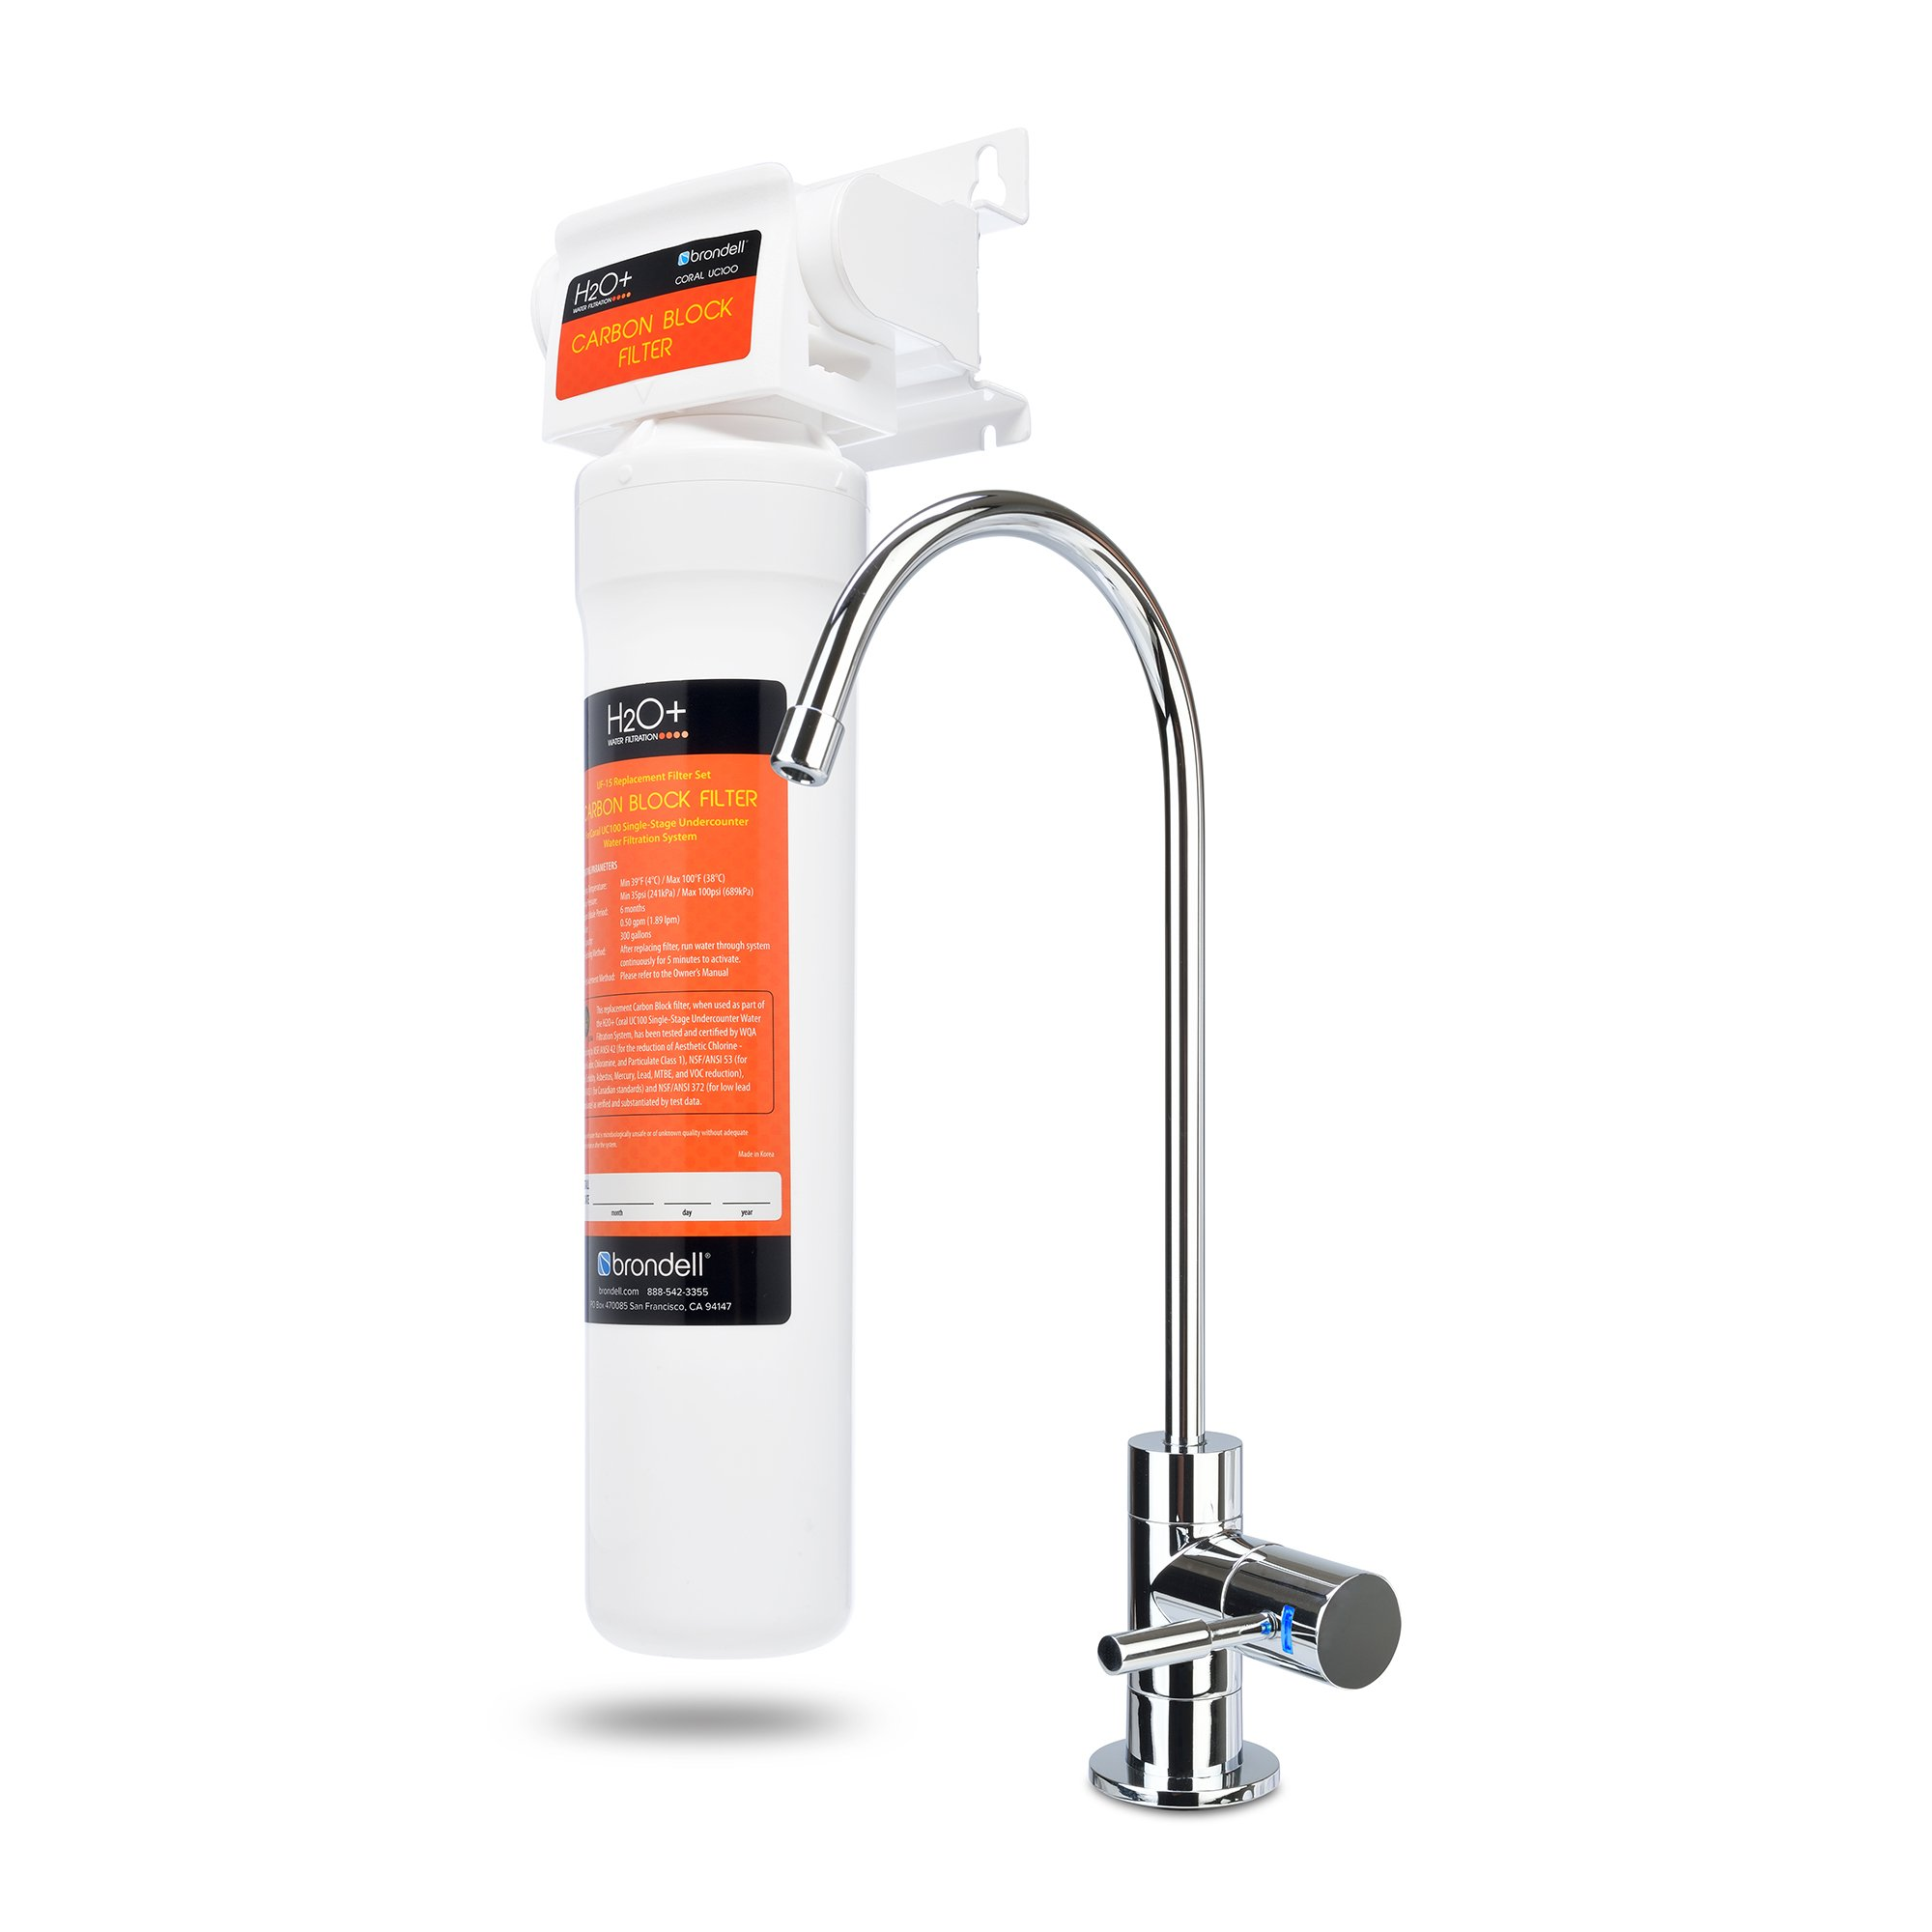 Brondell UC100 H2O+ Coral Single-Stage Under counter Water Filtration System with Over 99% Lead Reduction, 1, Chrome